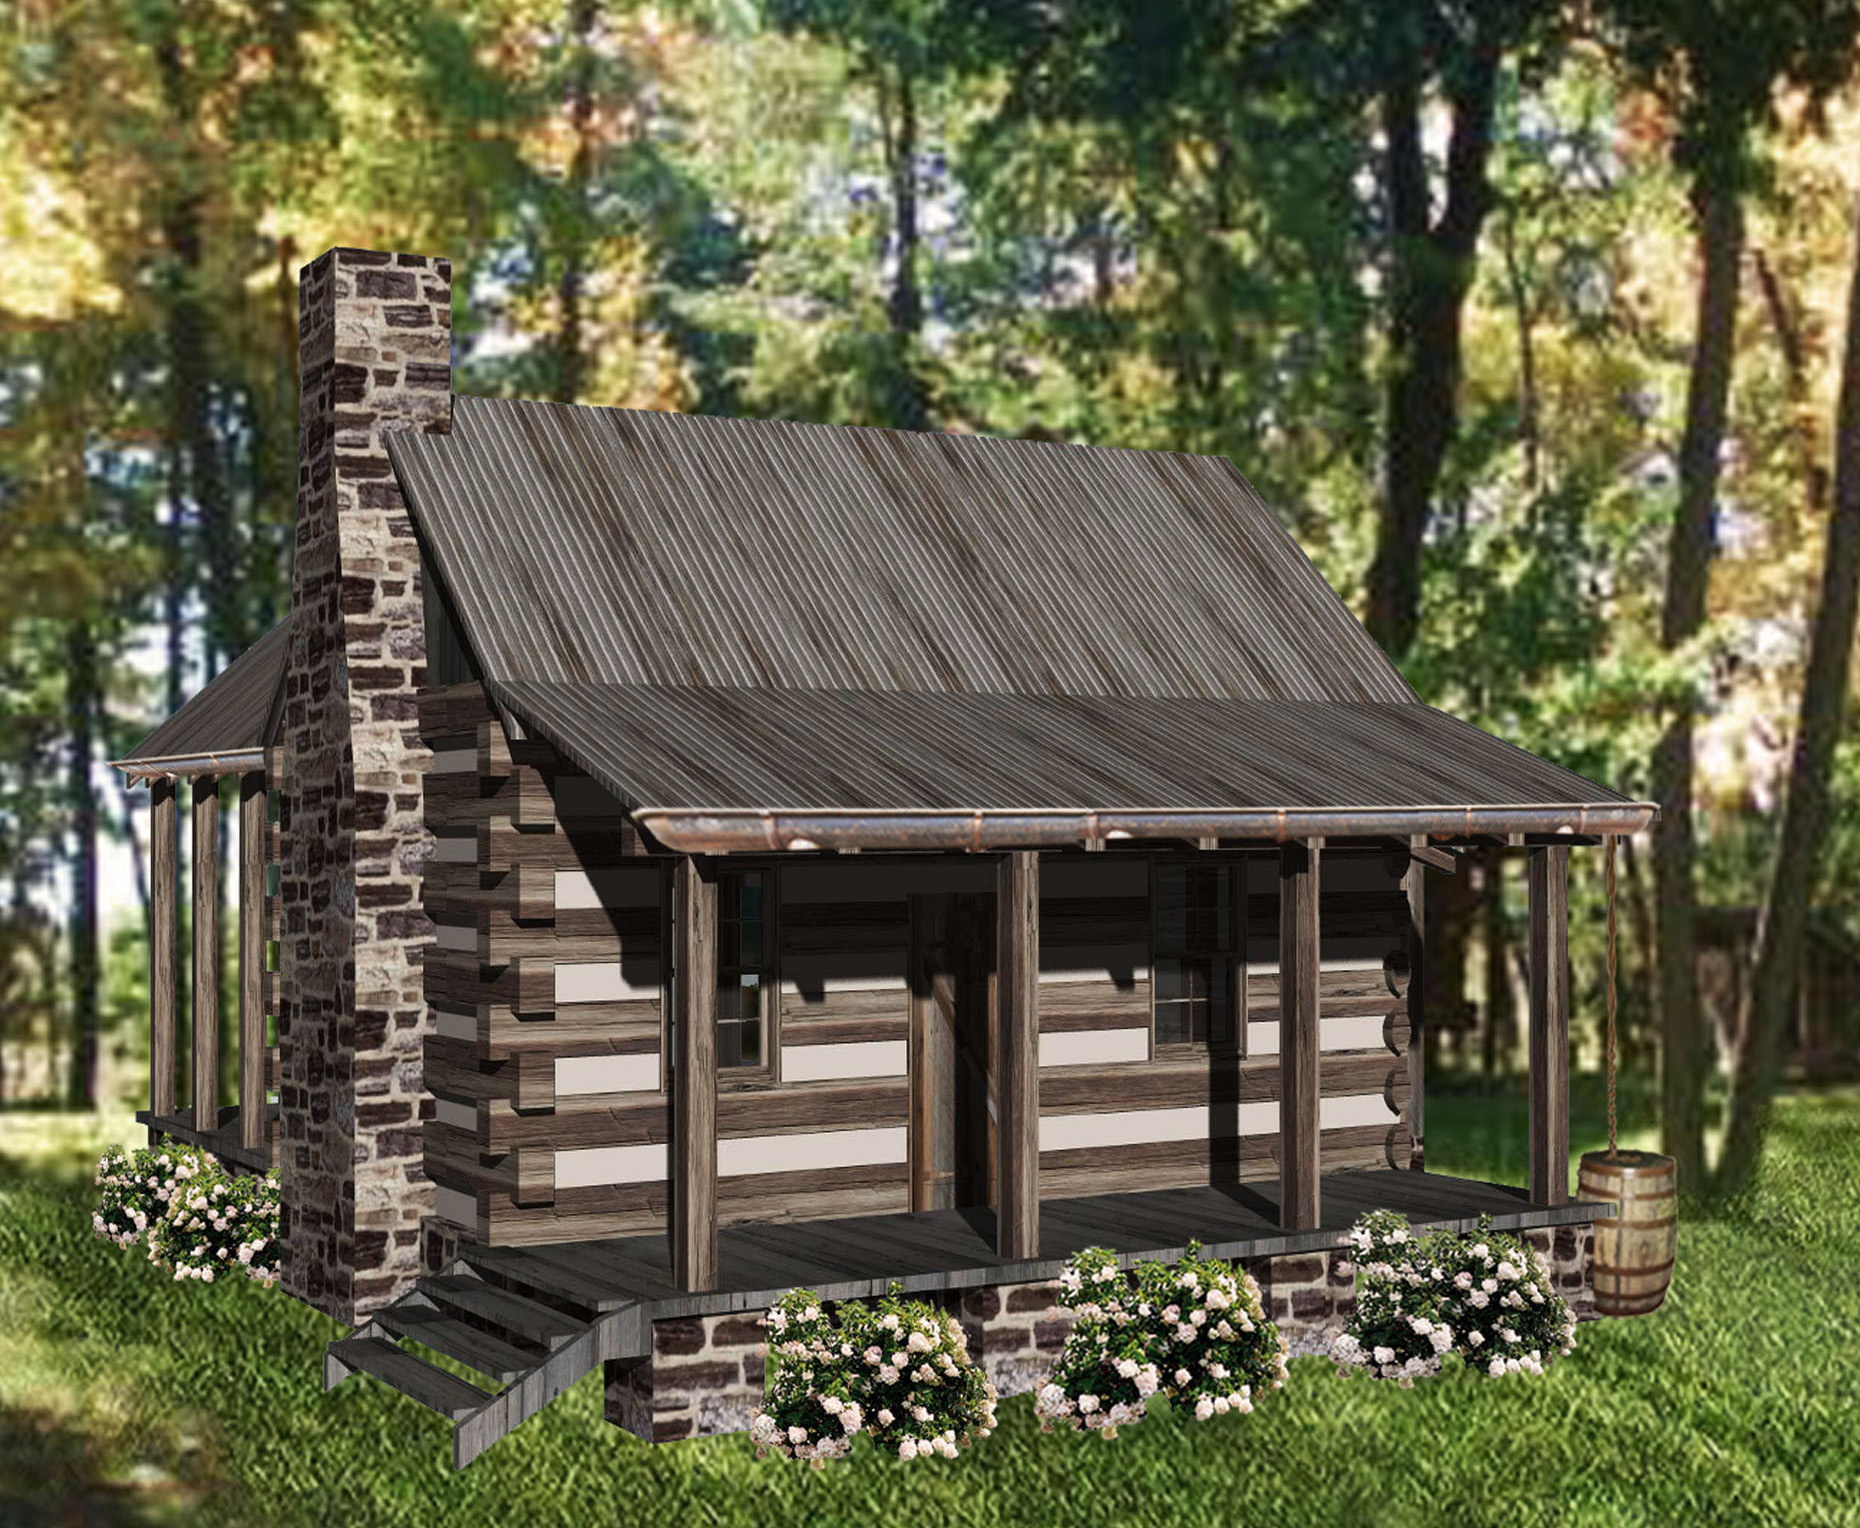 Cozy getaway log cabin 13328ww architectural designs for Log cabin plans